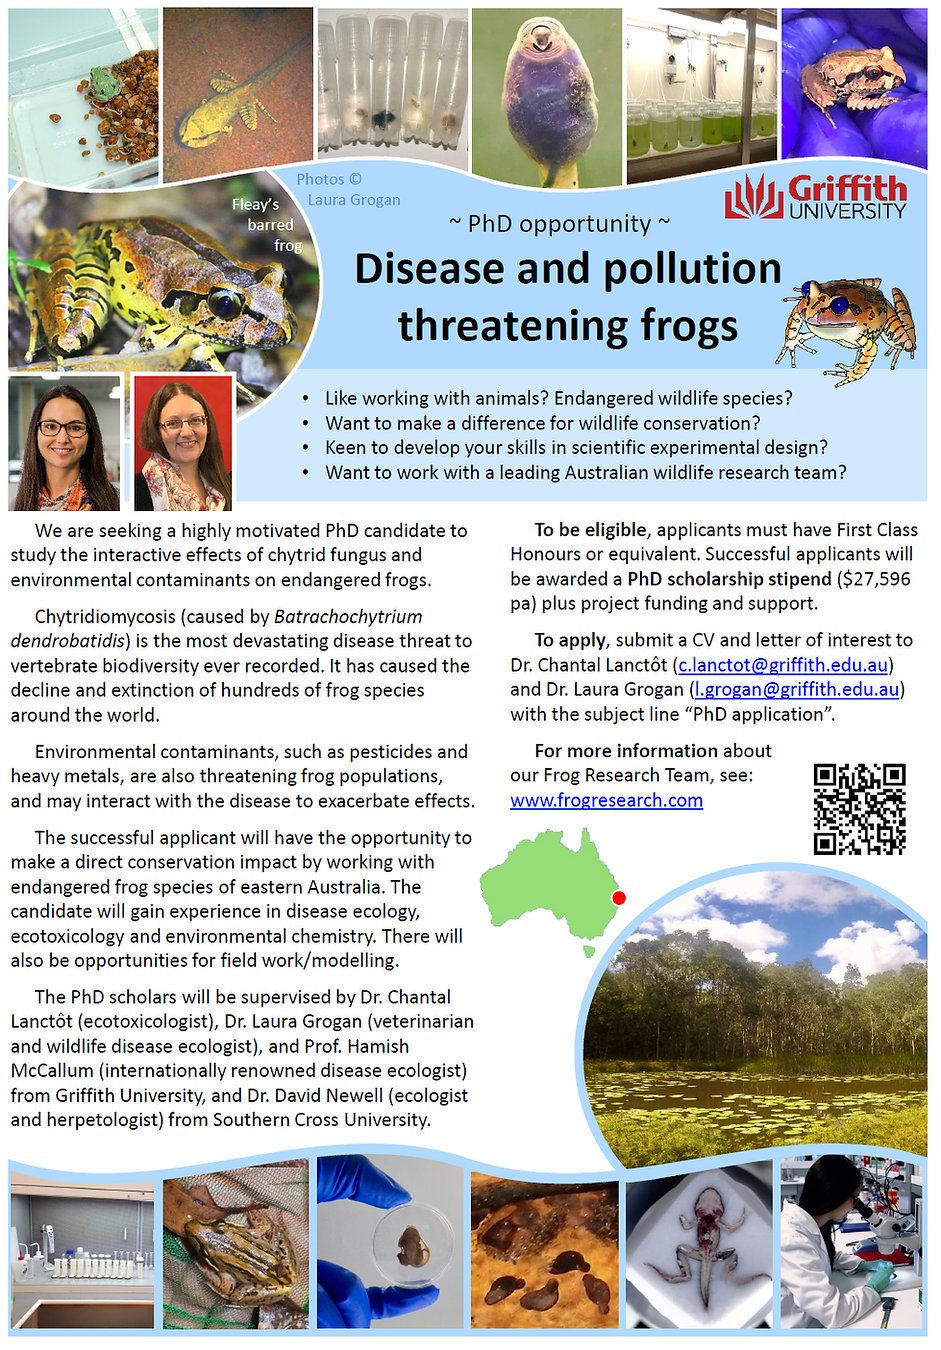 PhD flyer frogs and pollutants 3.jpg